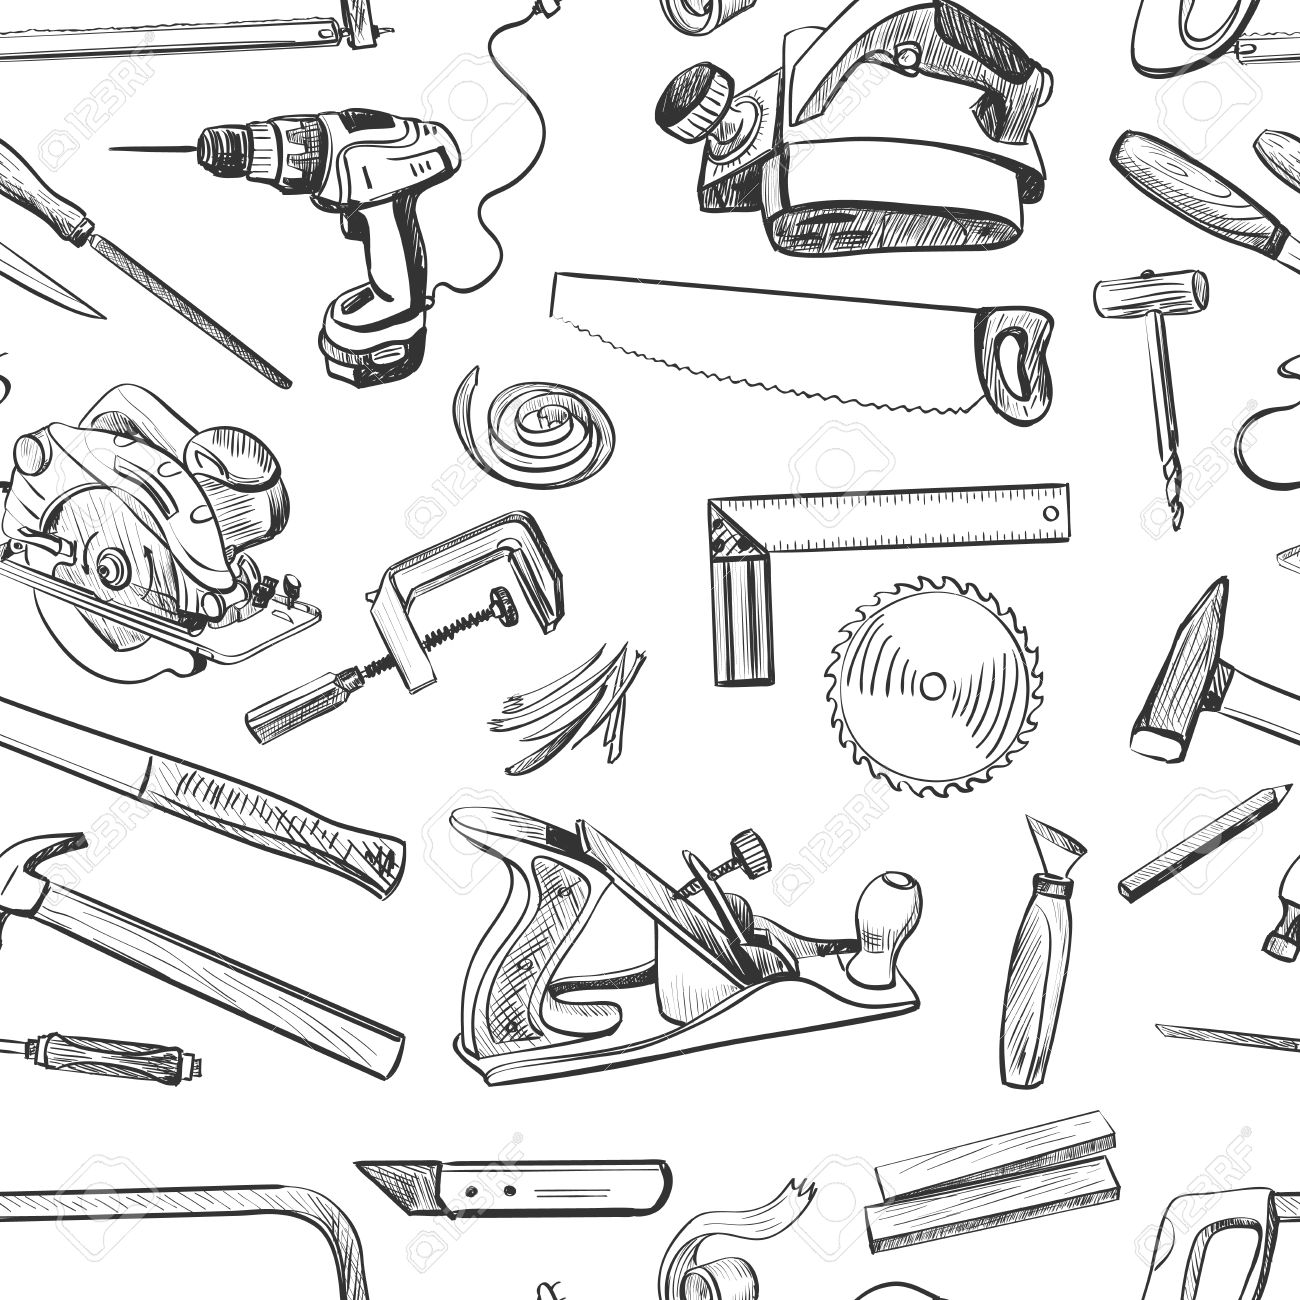 1300x1300 Vector Seamless Pattern With Hand Drawn Common Hand Tools Used